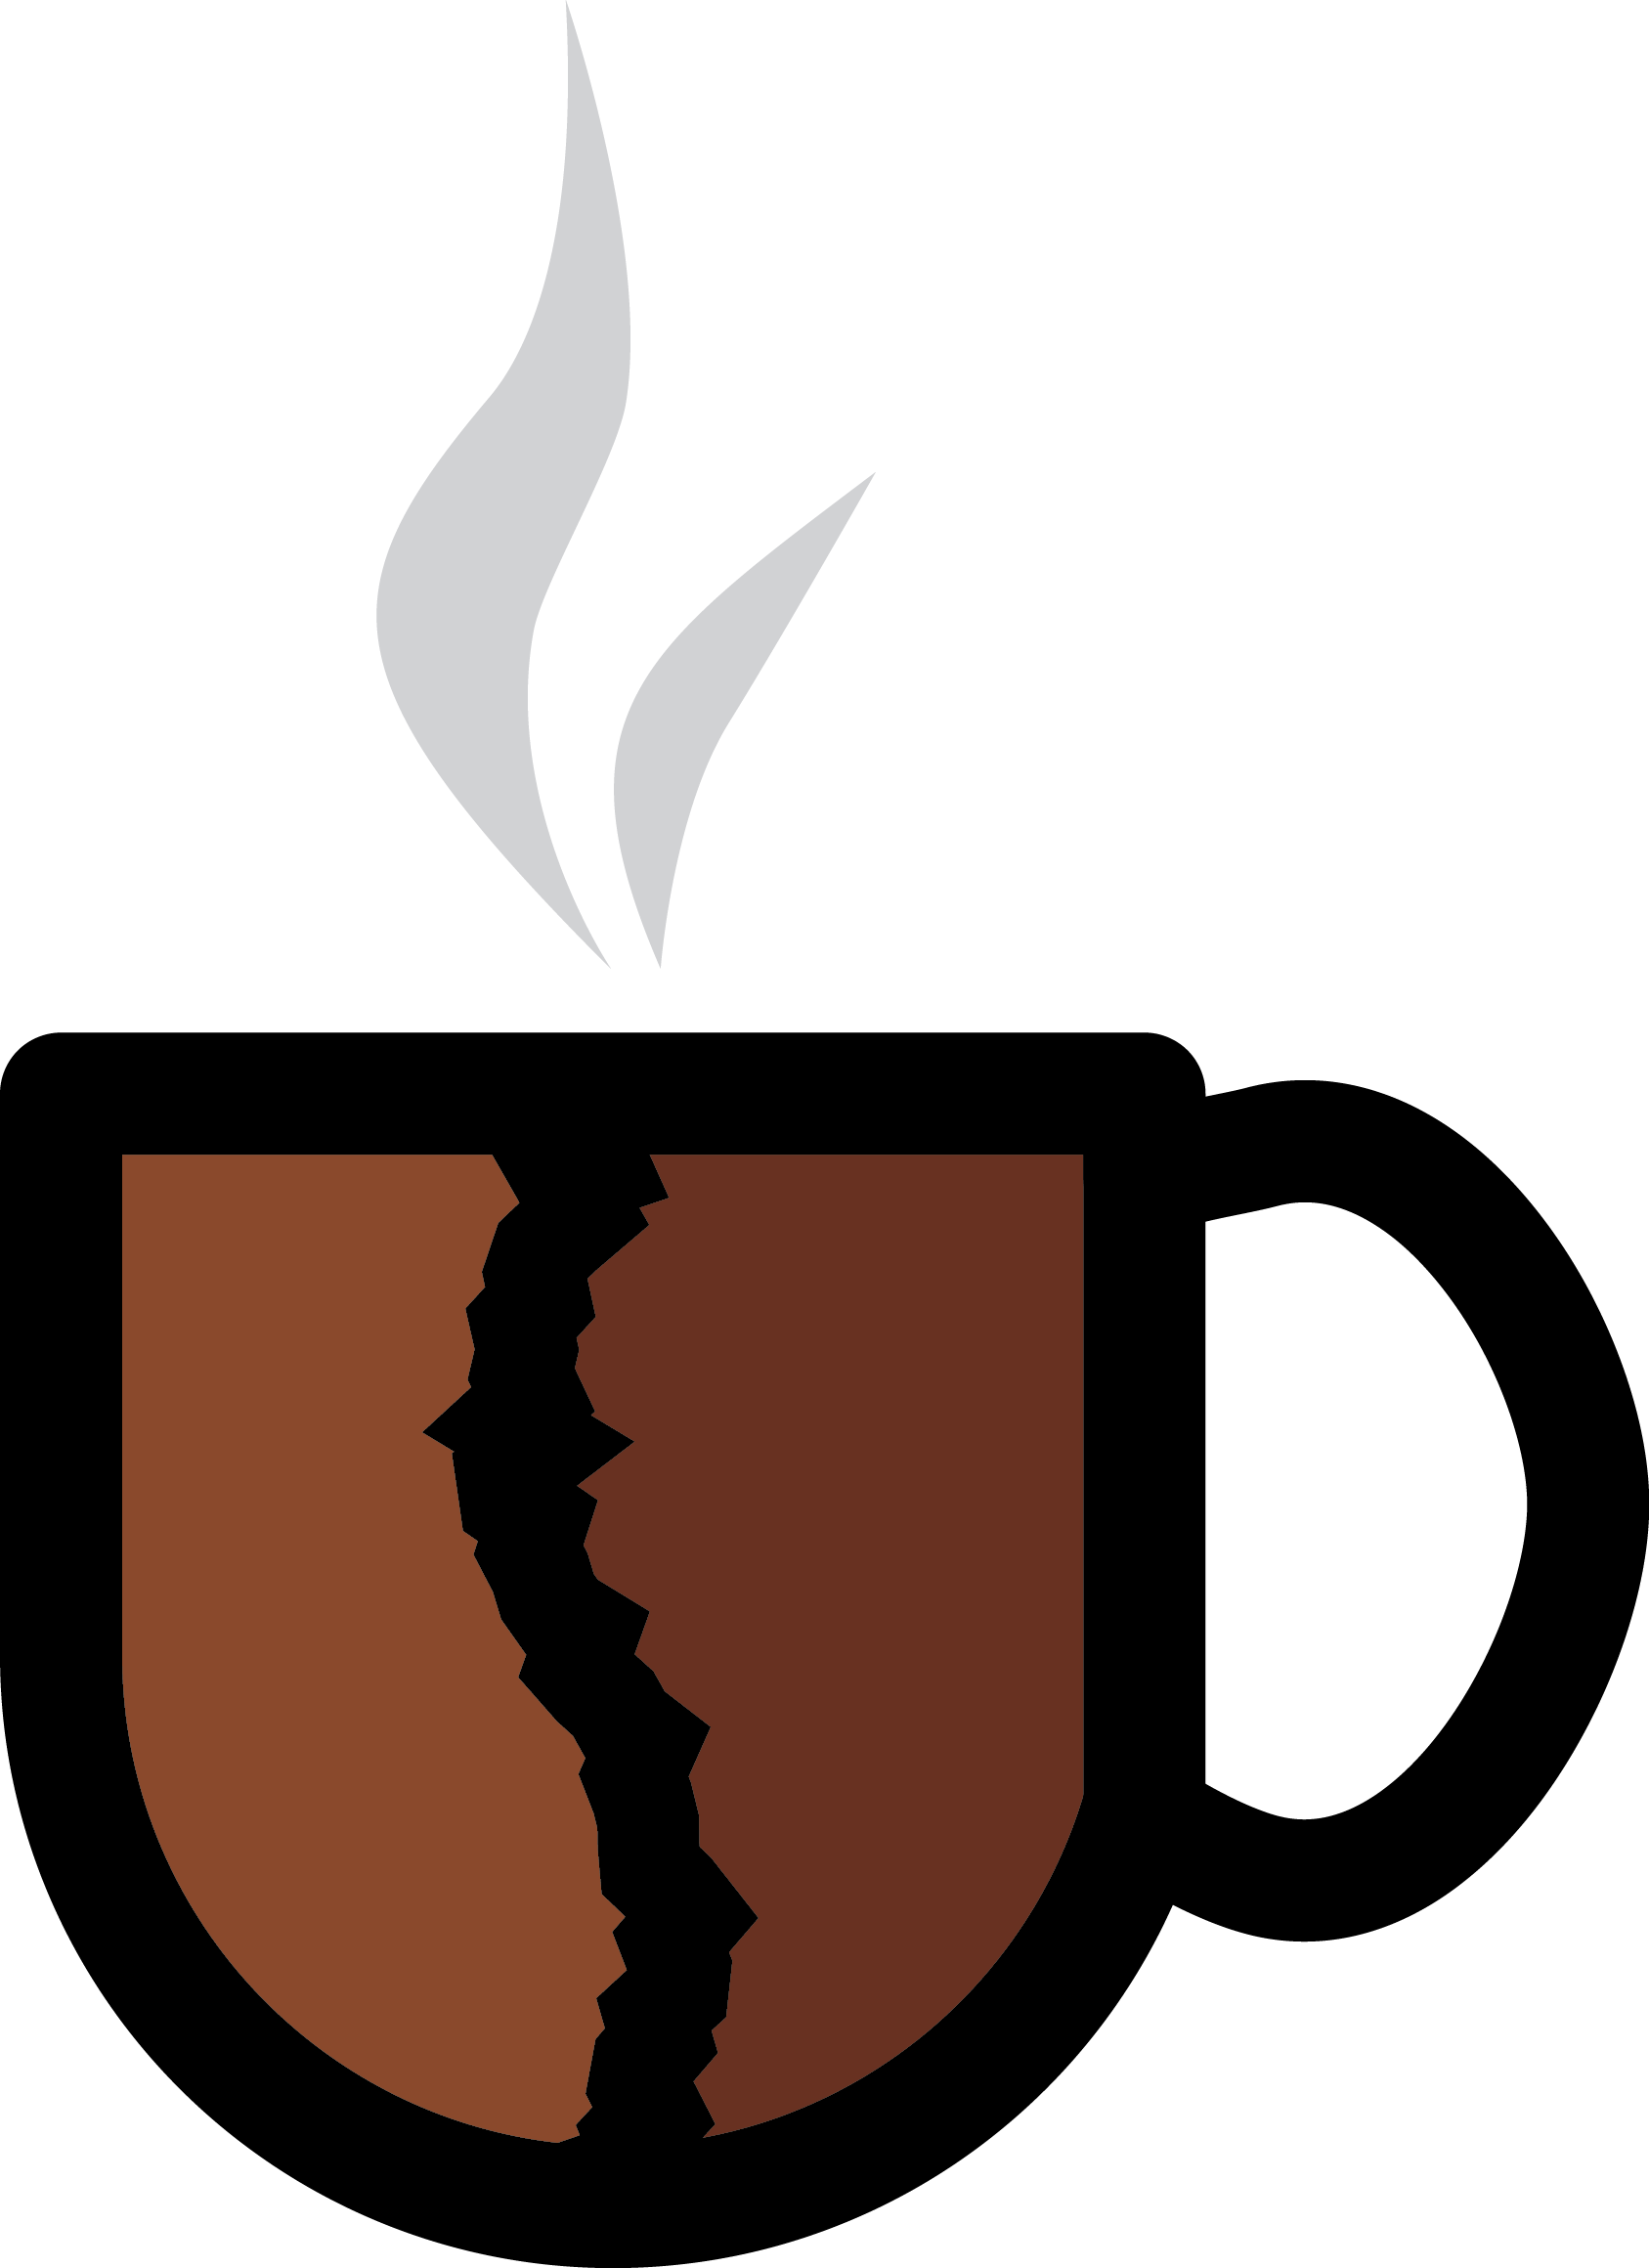 coffee shop.nonumbers.png